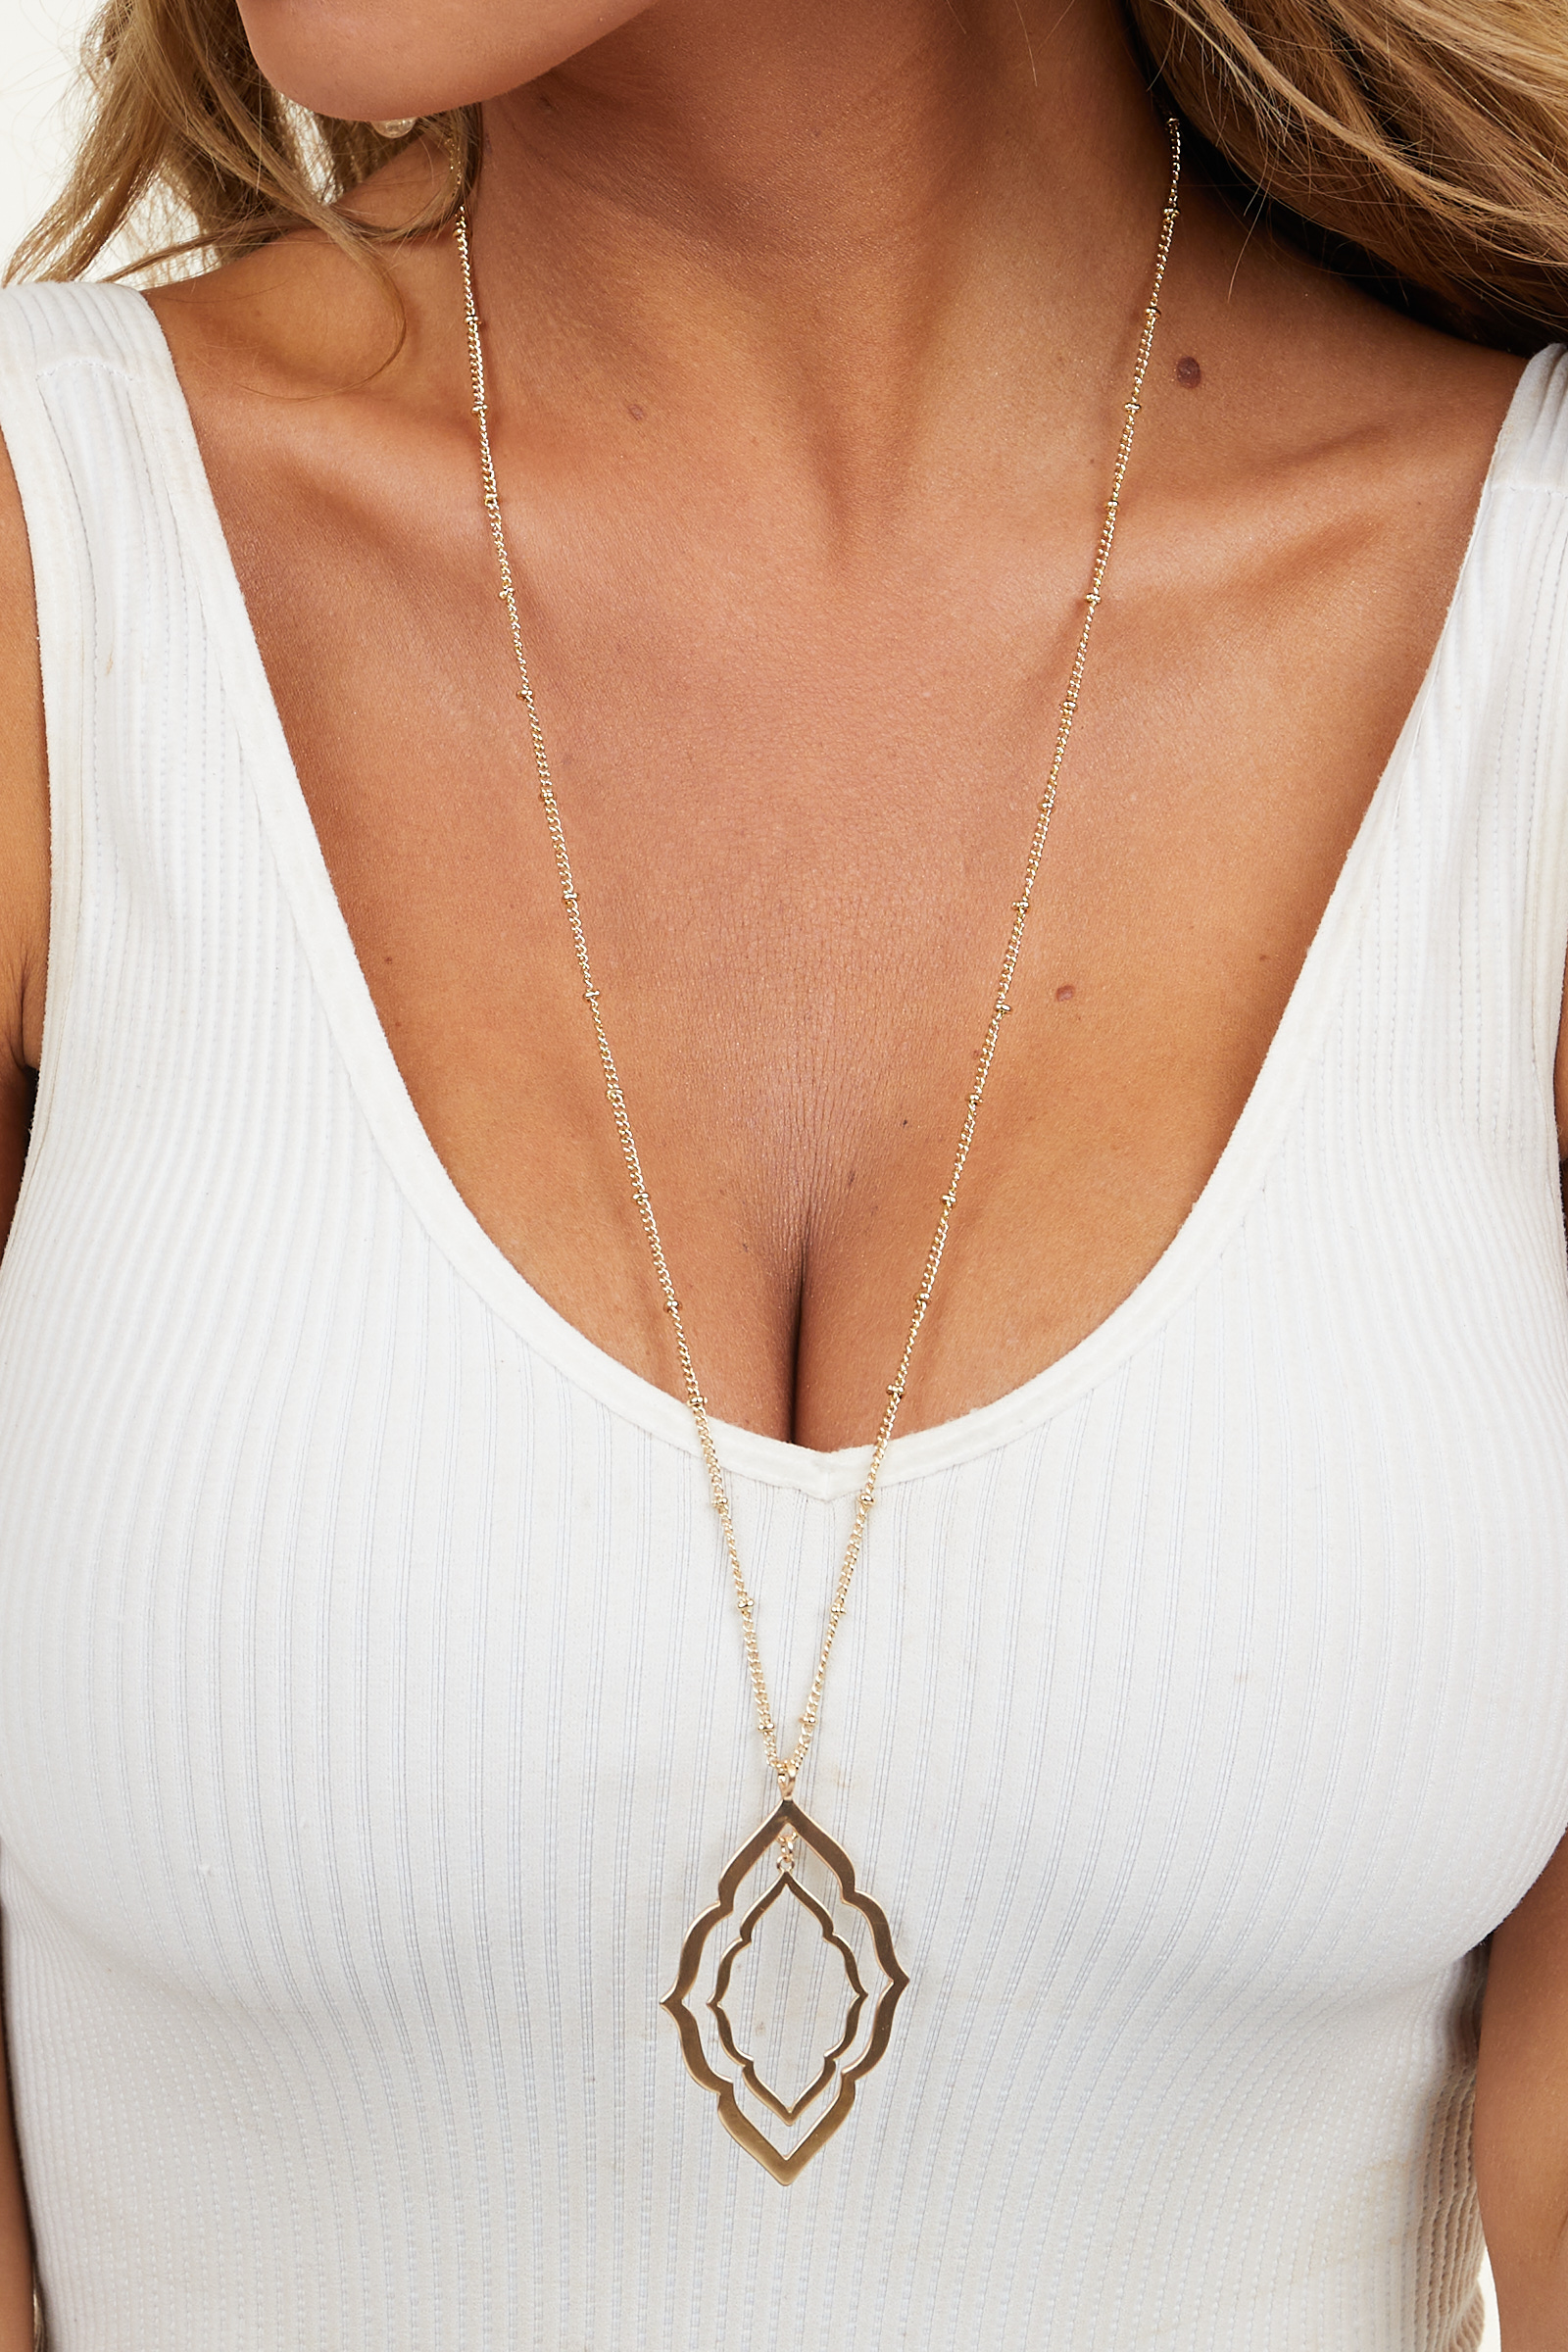 Gold Long Dangle Necklace with Diamond Shaped Pendant